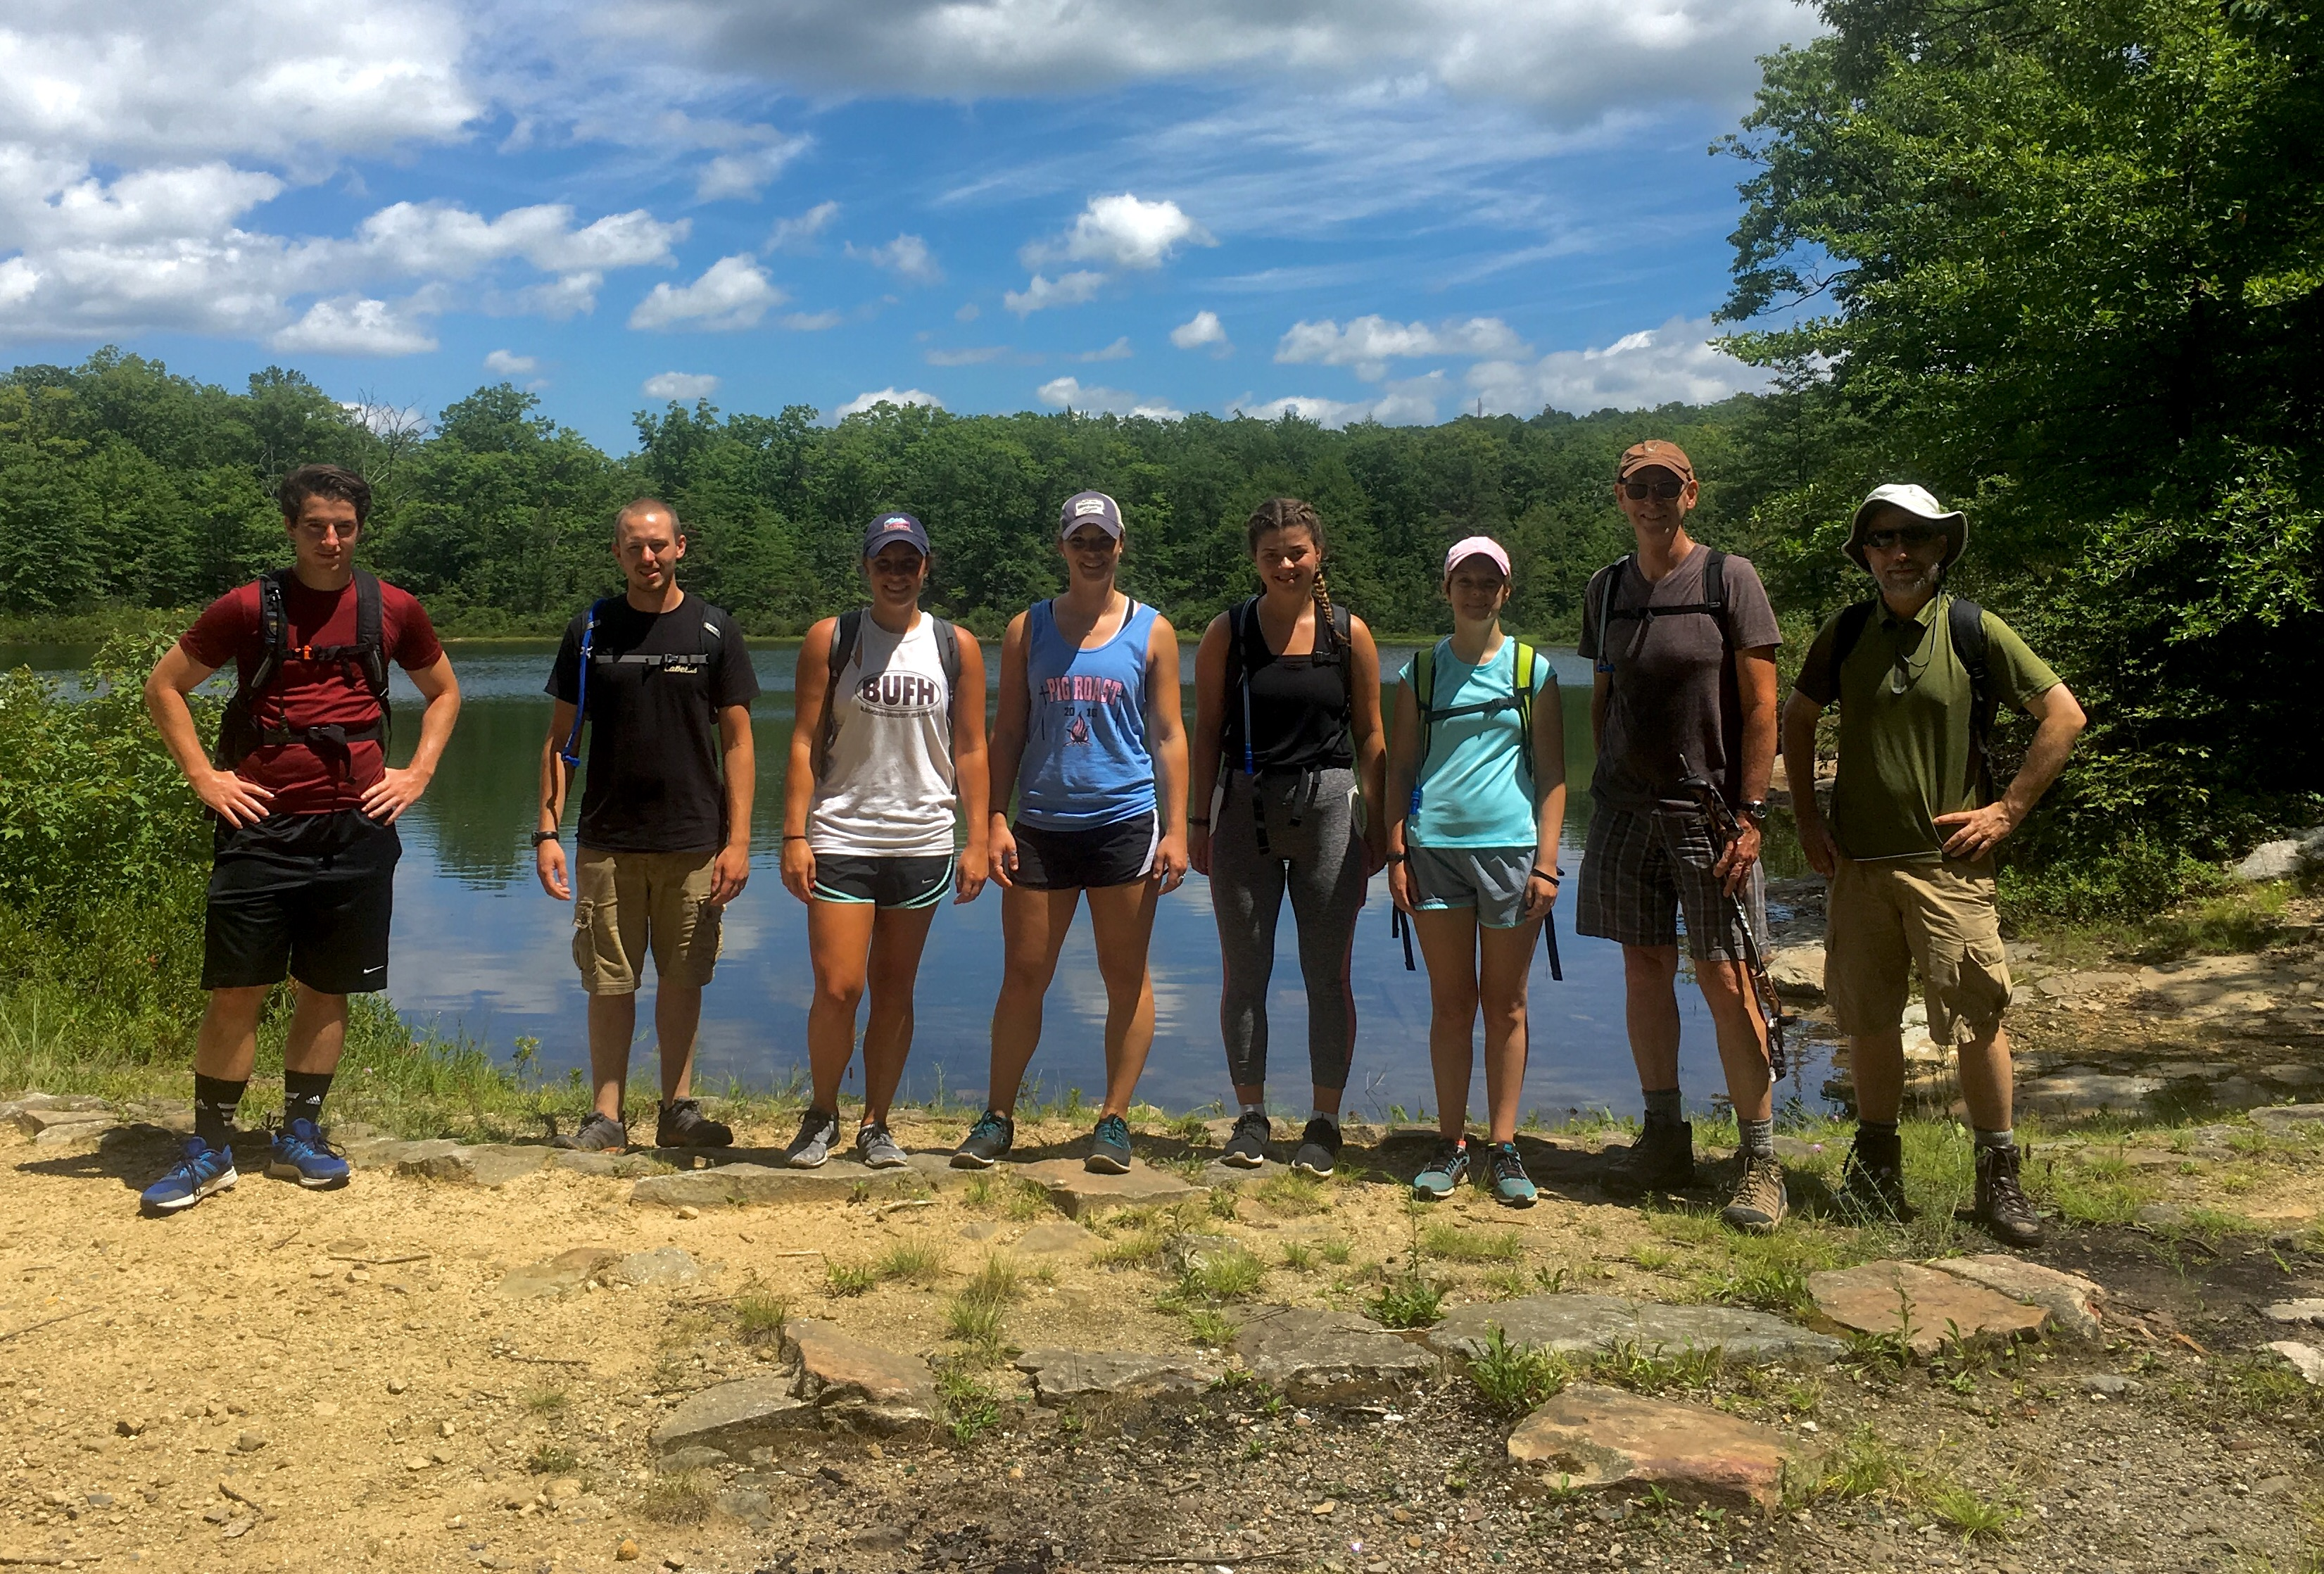 The EP NEPA crew with Biology Faculty Specialist Vince Marshall (right) and EP 2015 alumni Gabby Prezkop and Marissa D'Avignon (2nd and 3rd from left, respect.)